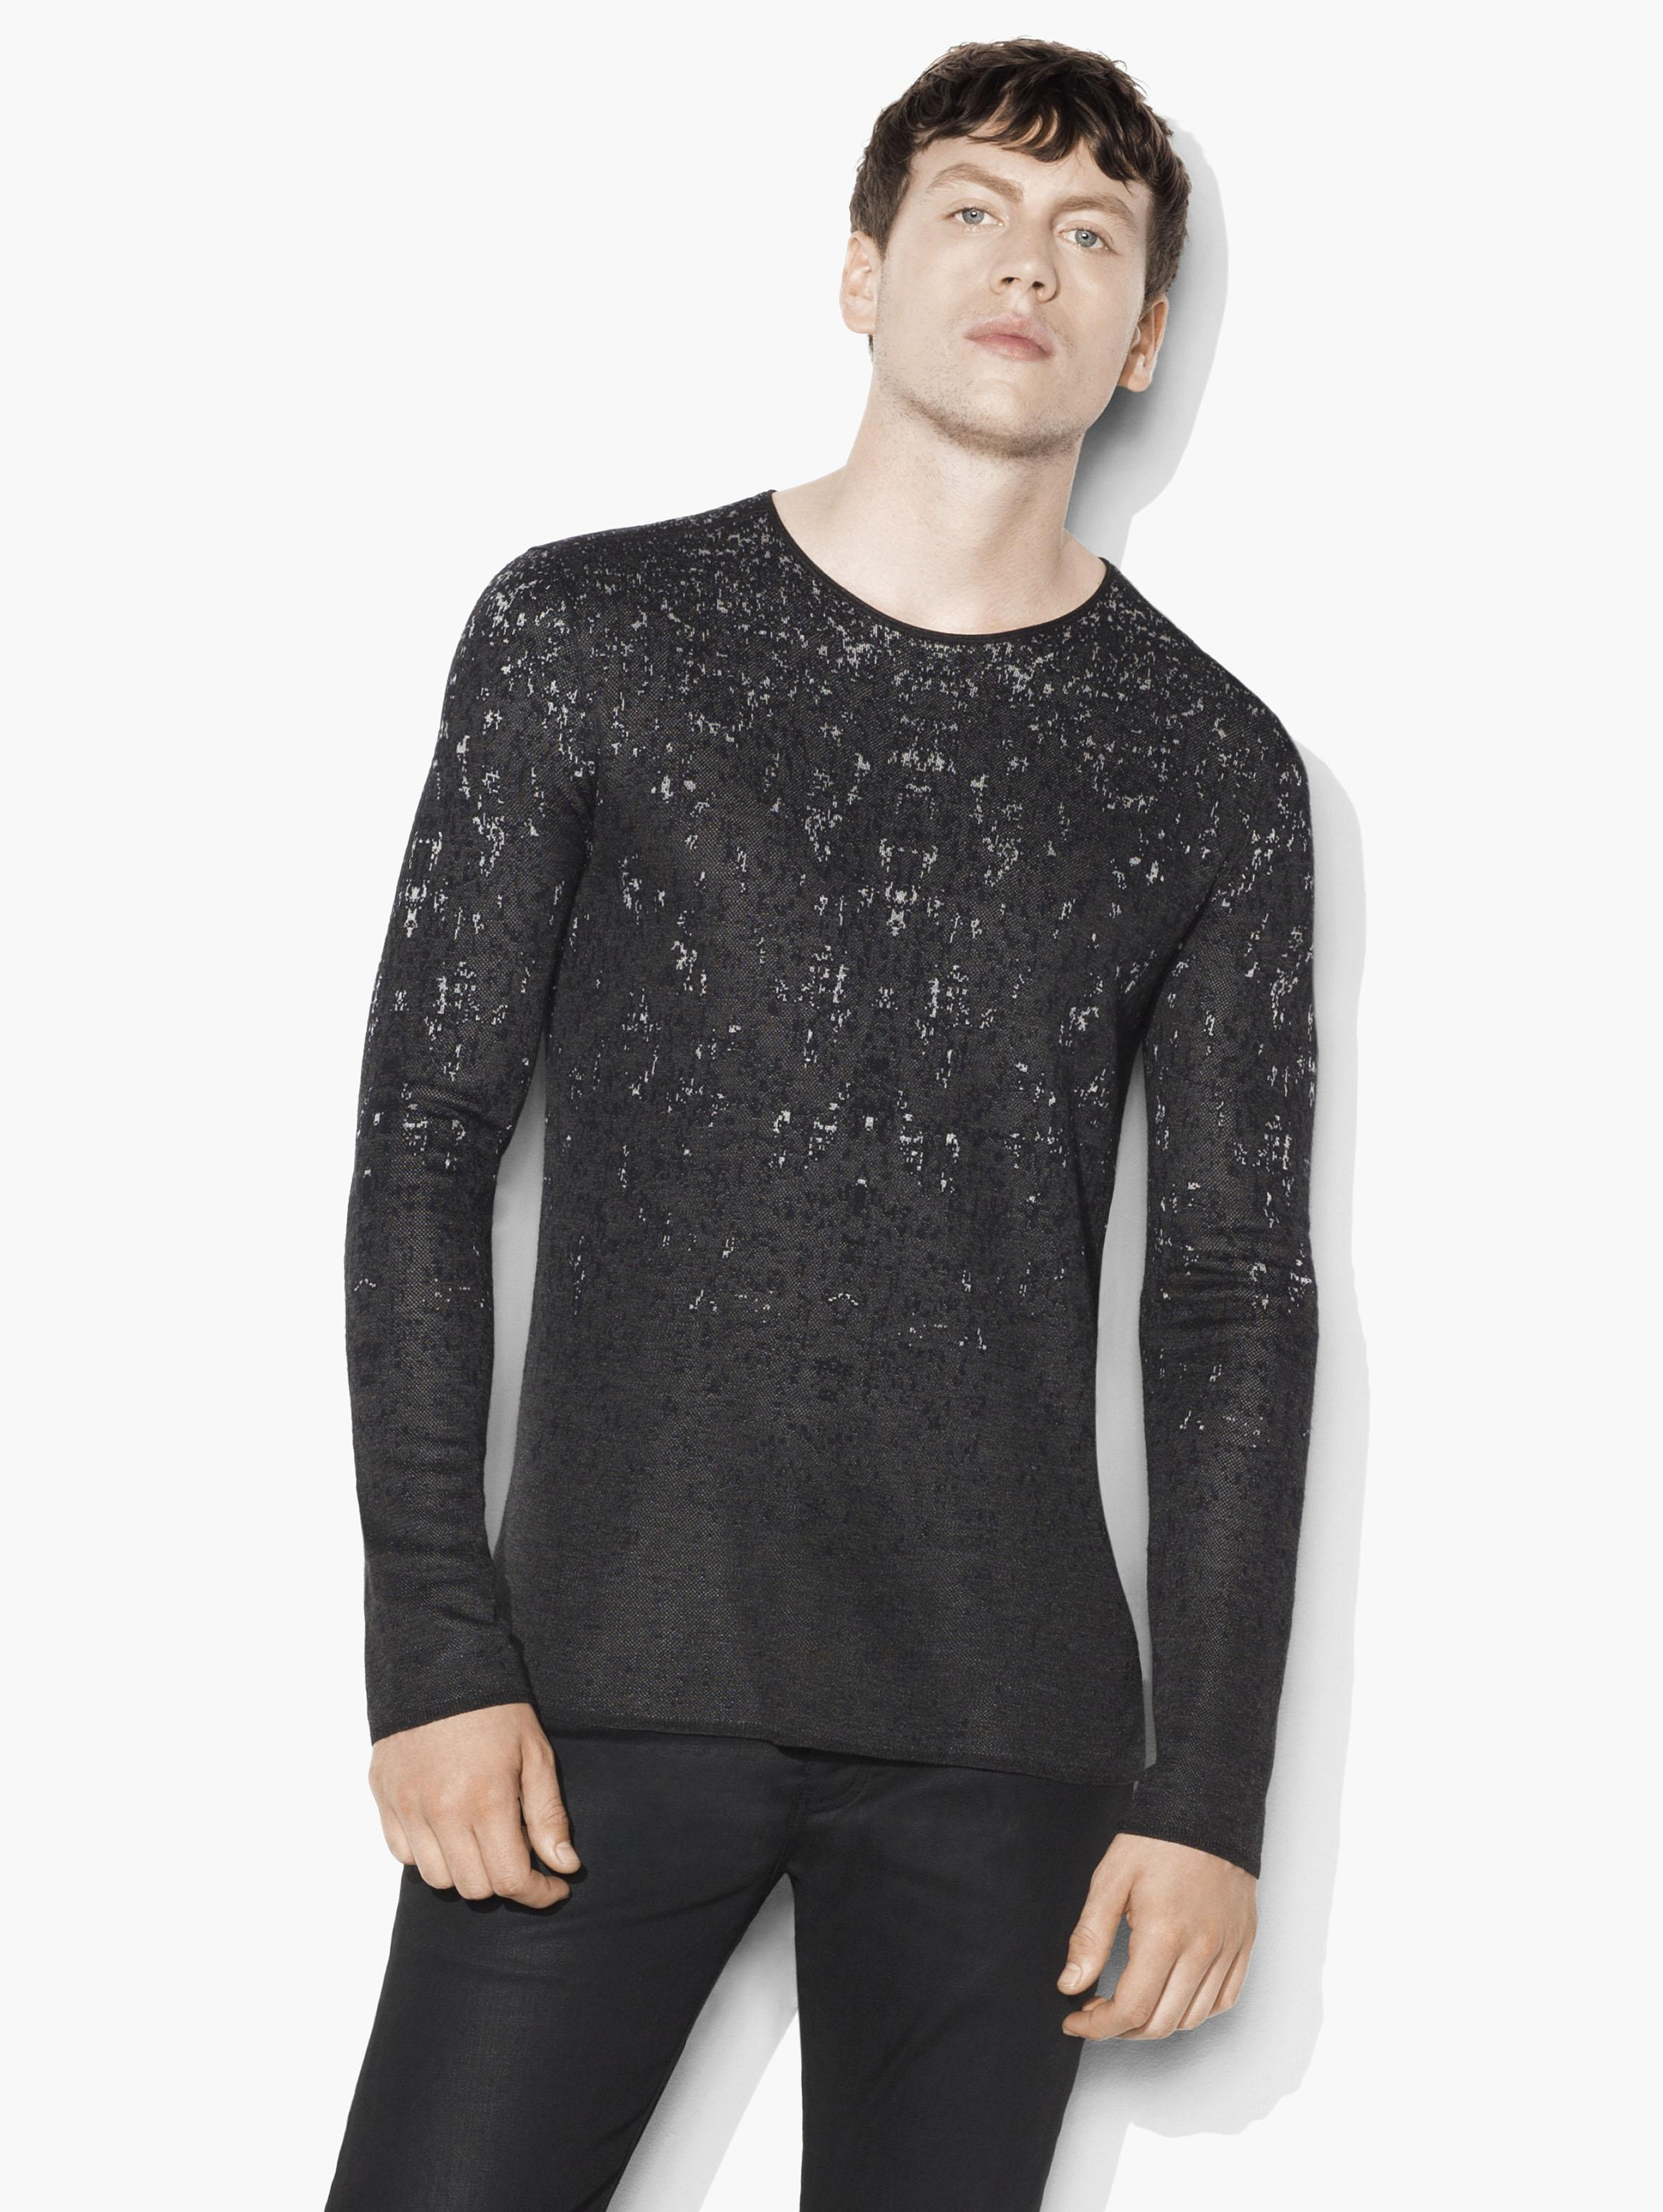 Degrade Jacquard Crewneck